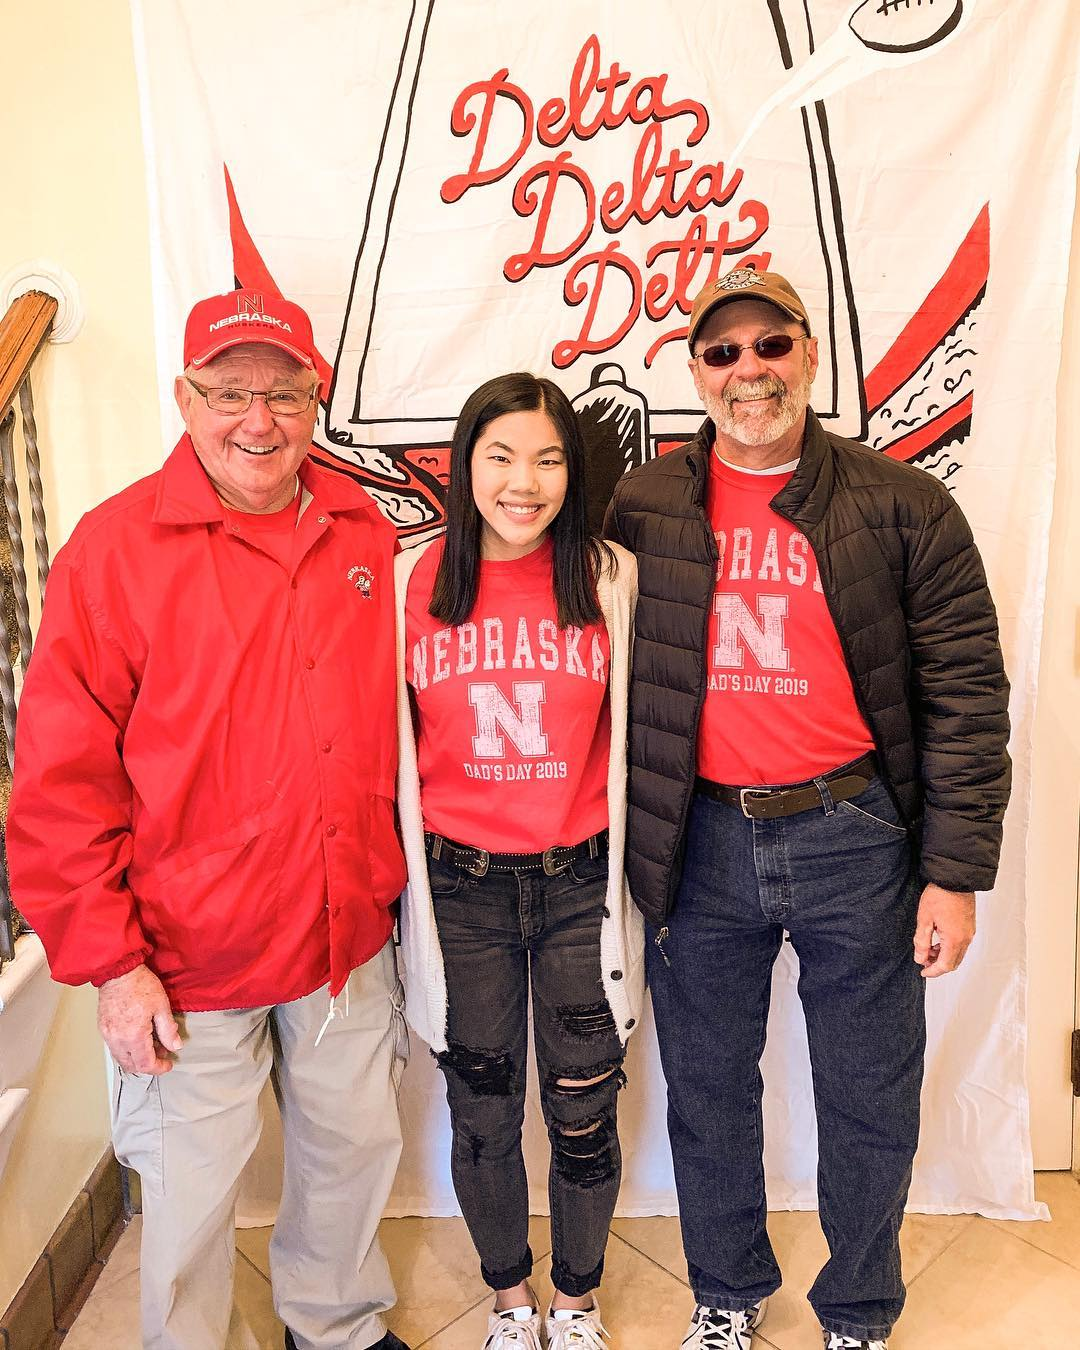 Student with grandpa and uncle at Delta Delta Delta dad's day